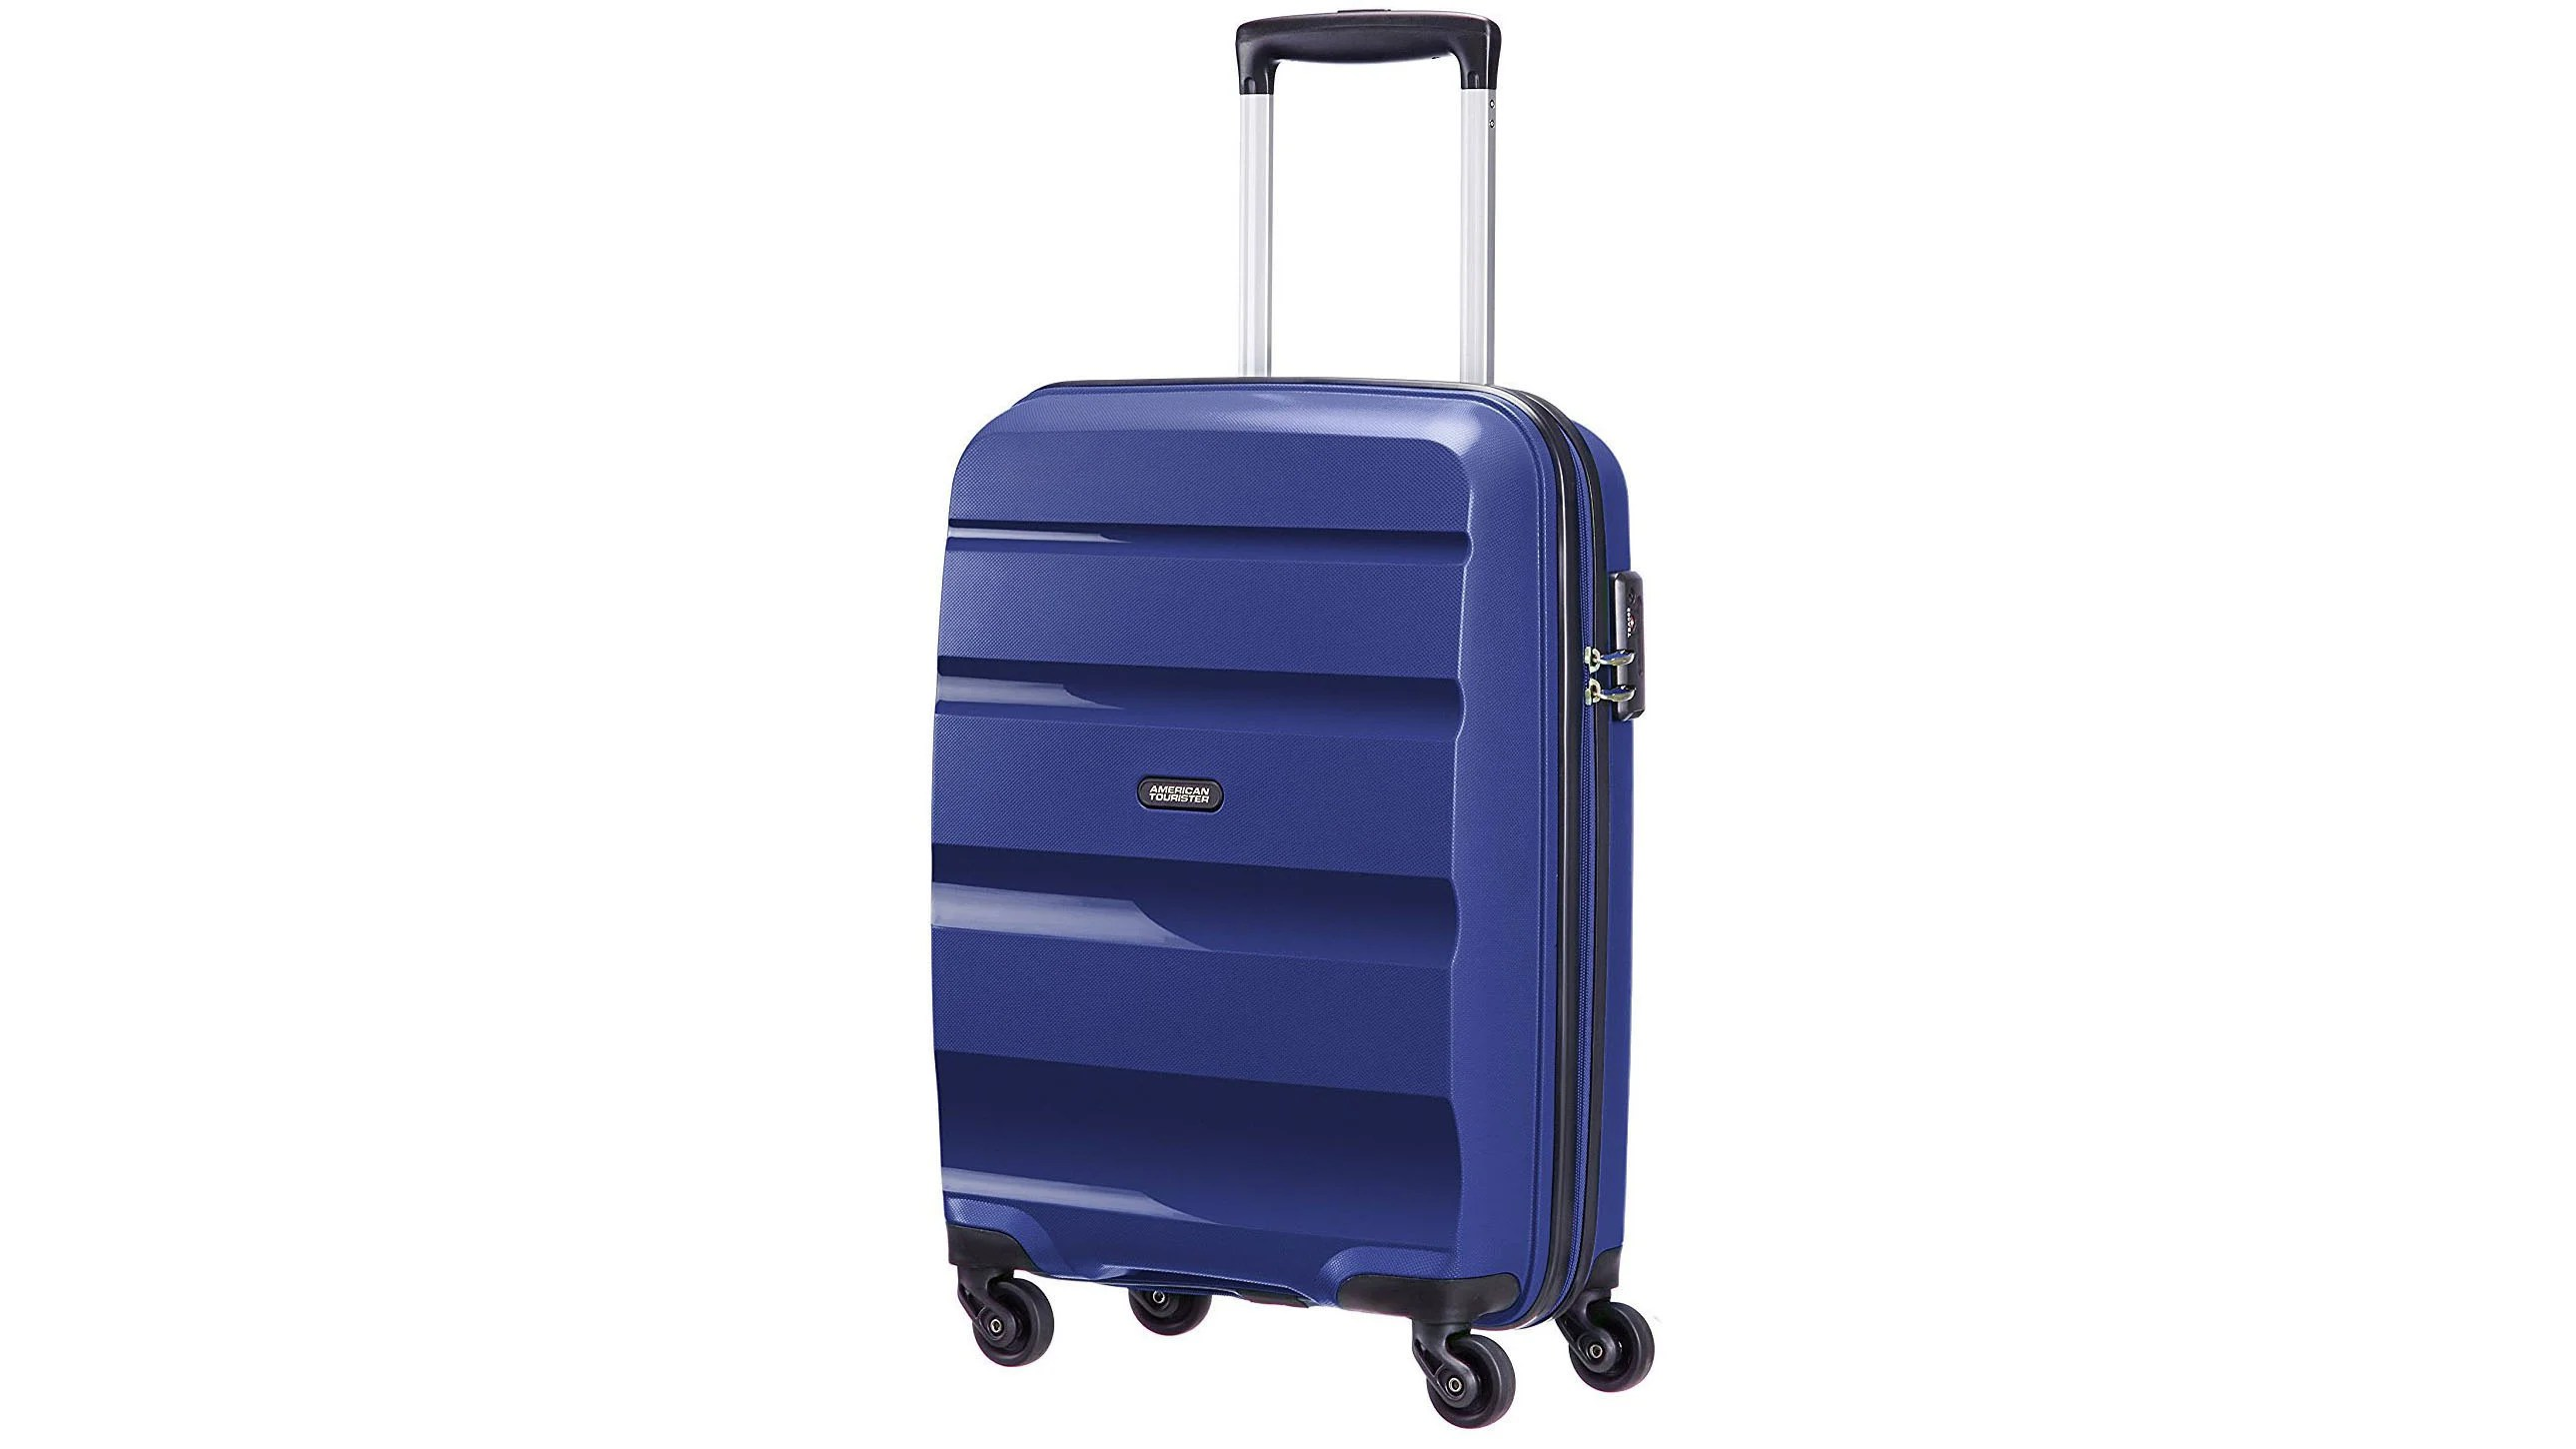 Lightweight Cabin Luggage Best Hand Luggage The Best Cabin Size Carry On Bags From 28